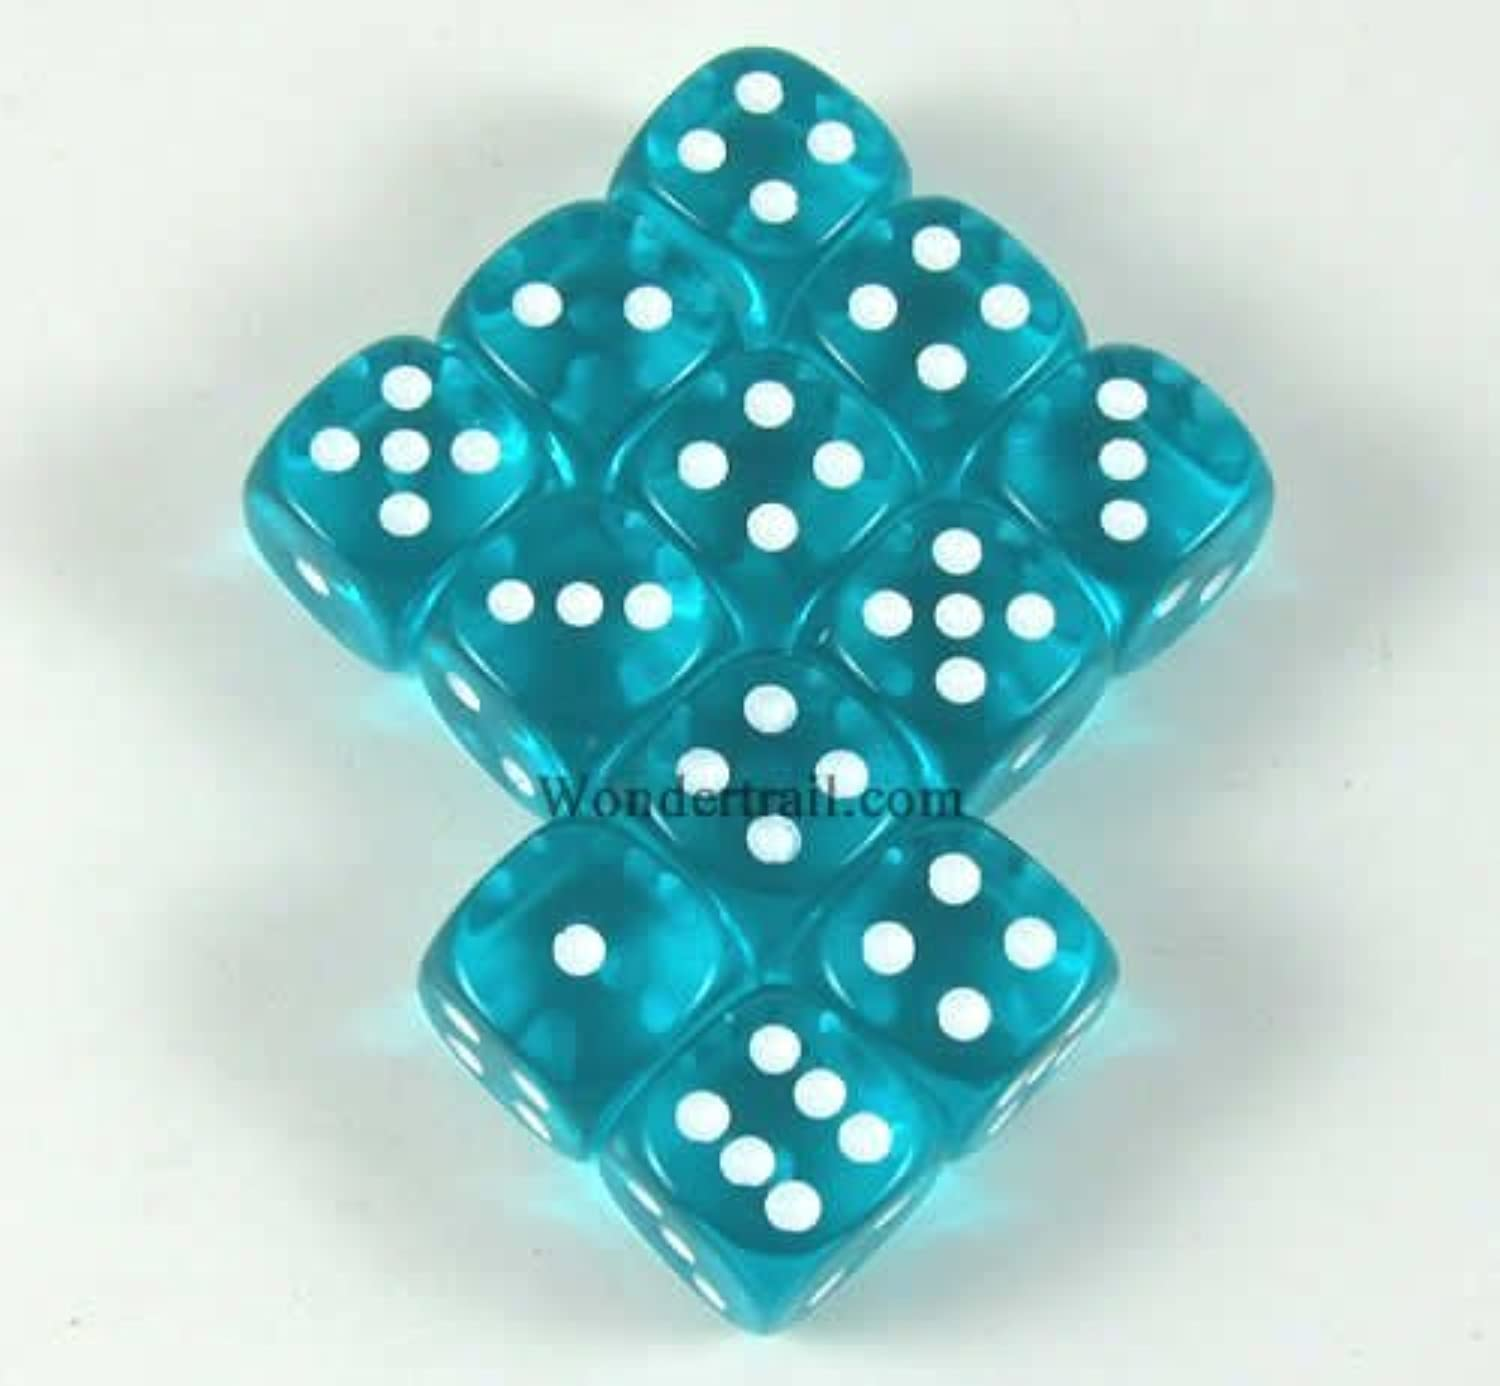 Teal Translucent with White Pips 12mm D6 Dice Set of 12 Wondertrail WCX23815E12 by Wondertrail